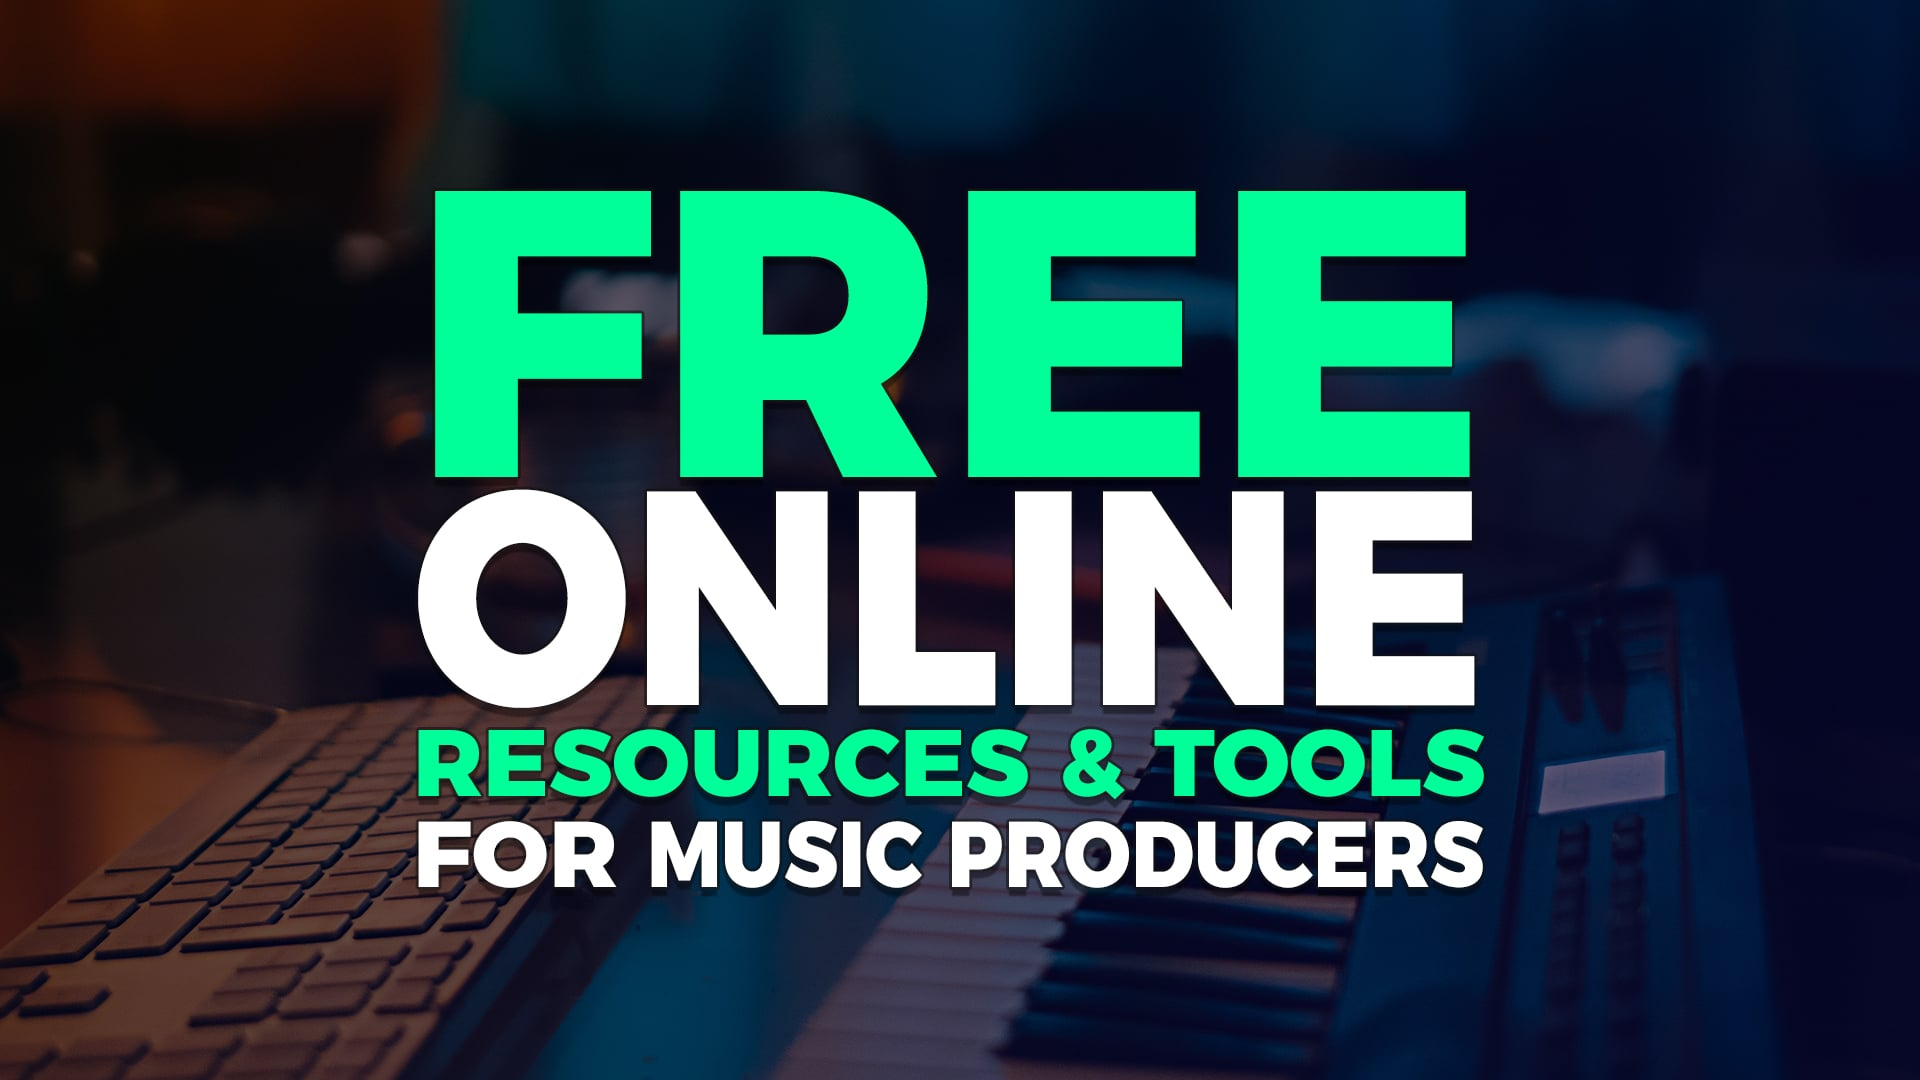 Free online resources and tools for music producers